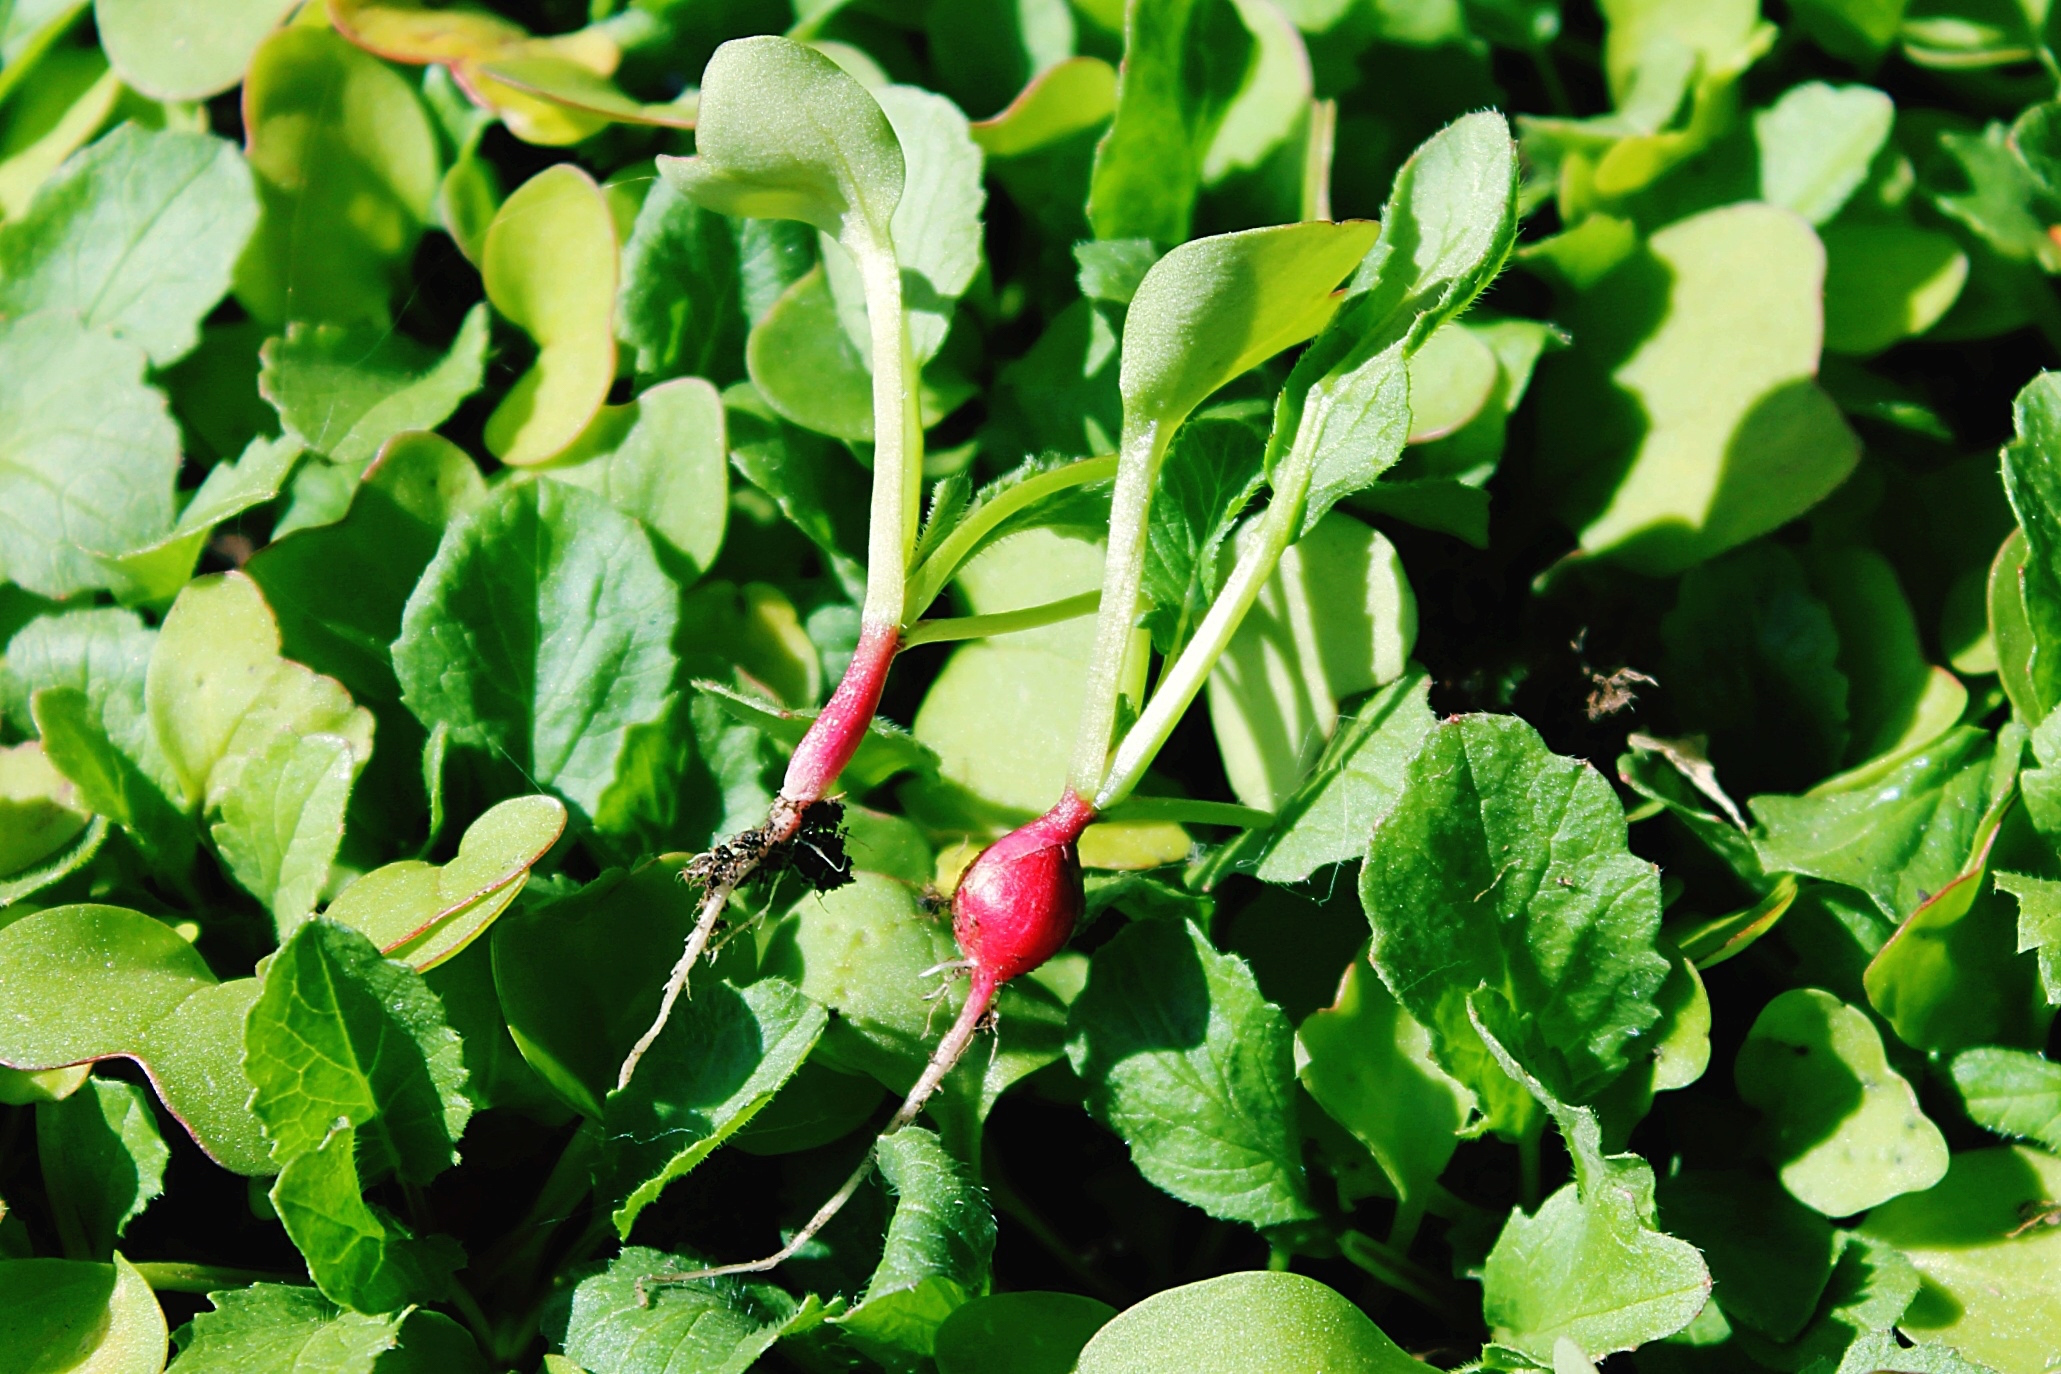 These greens are extremely easy to grow in the fall, when nights become longer and cooler turnip greens get crisper and sweeter, says Casanova.